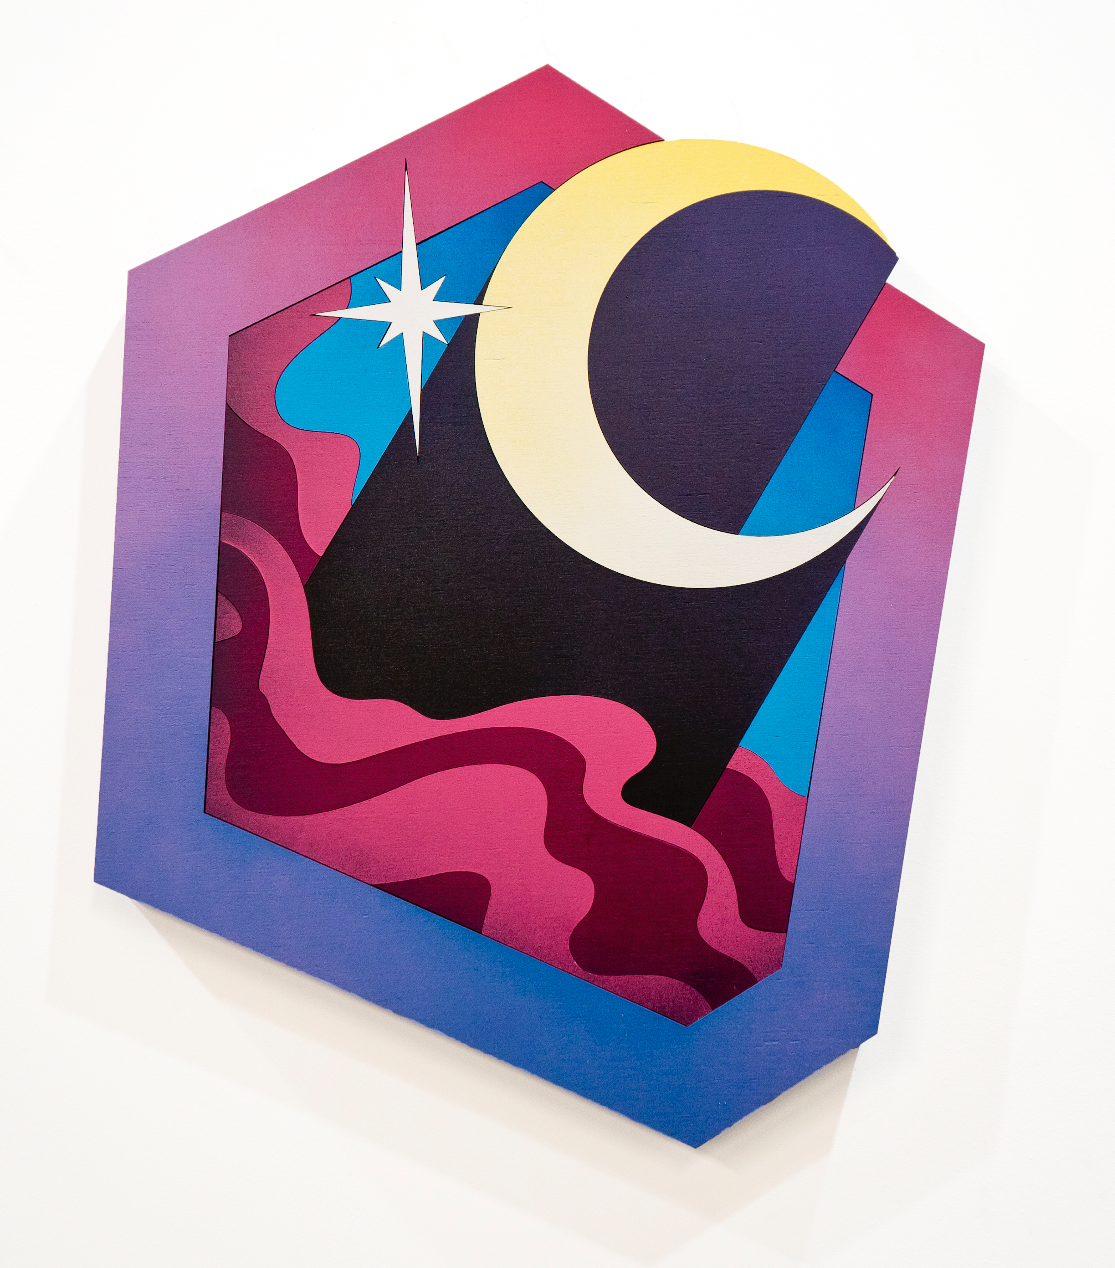 Mickael Broth Les Etoiles, La Lune (the stars, the moon) 24x20 Spray paint on 22 pieces of wood $1600.png